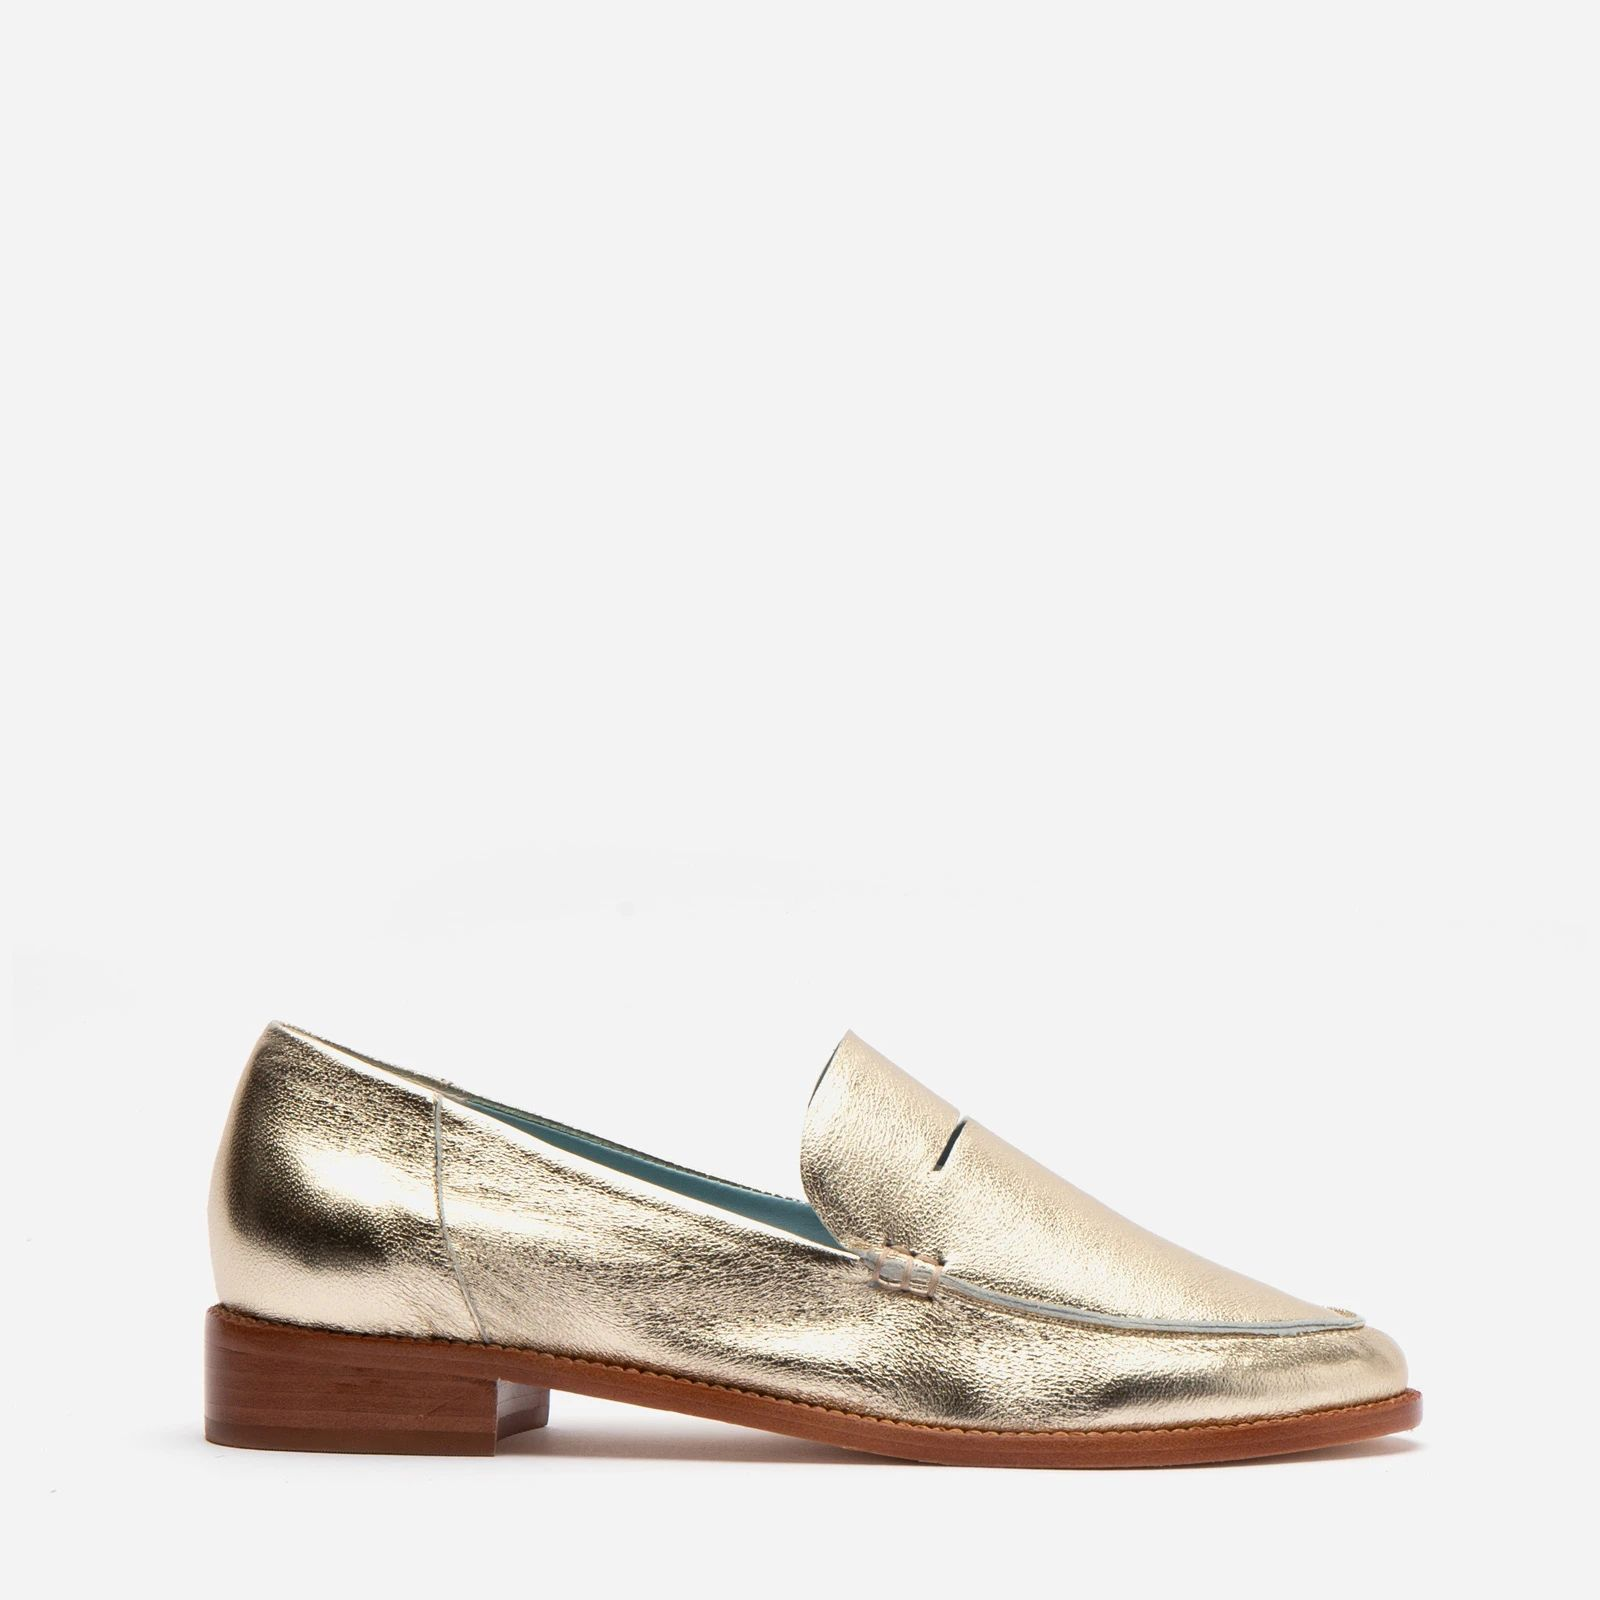 shop francis valentine shoes